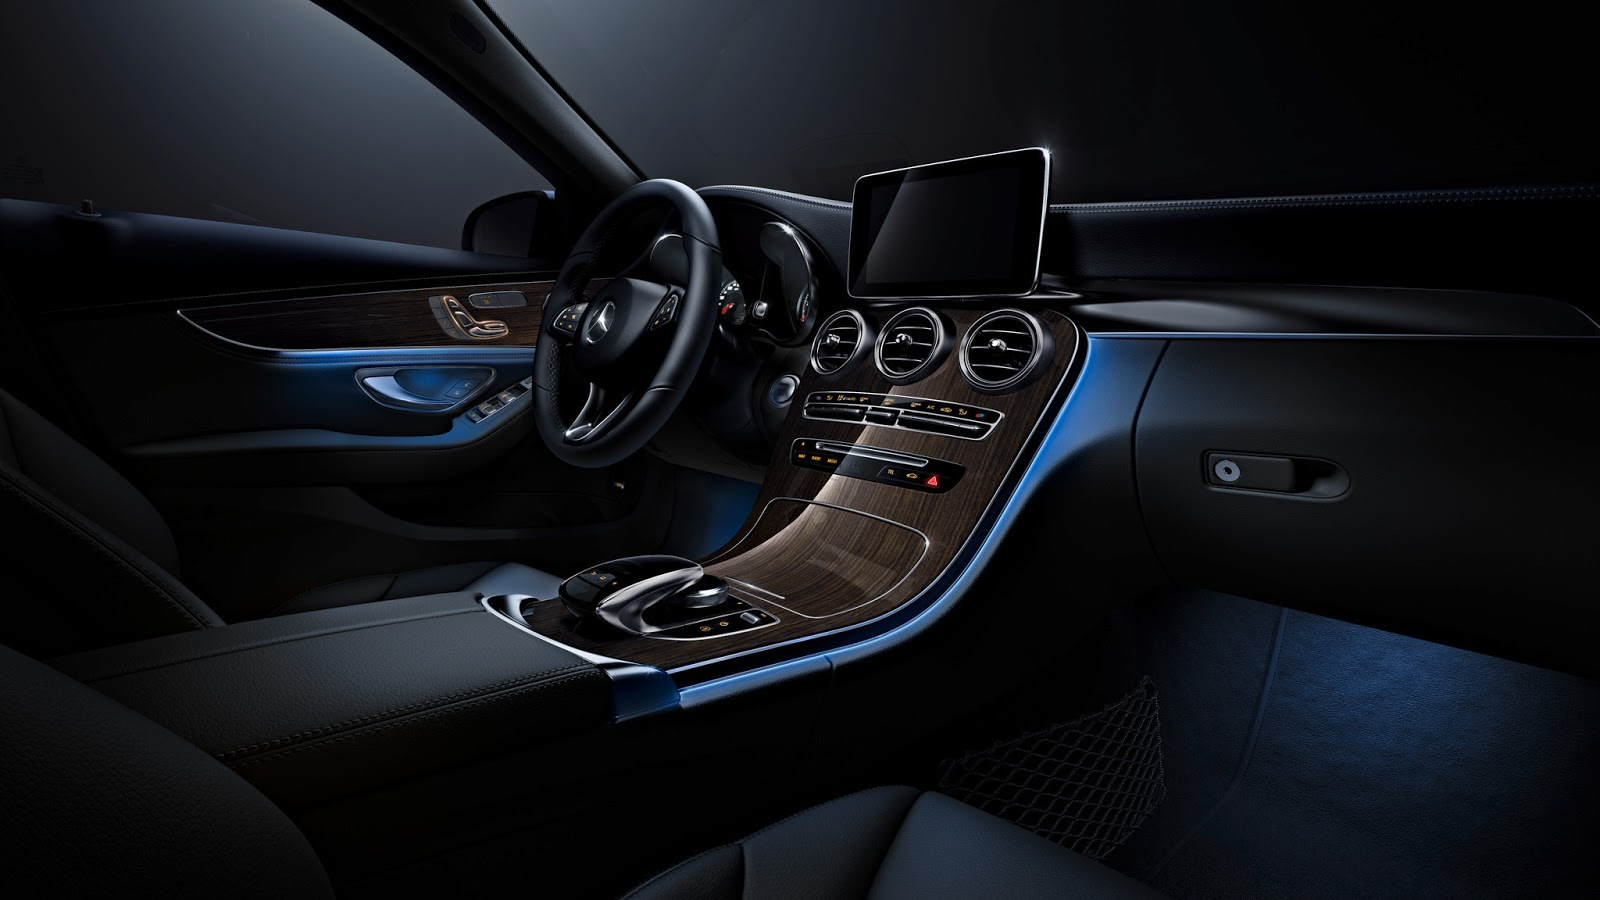 mercedes benz c class receives s class inspired ambient lighting carscoops. Black Bedroom Furniture Sets. Home Design Ideas